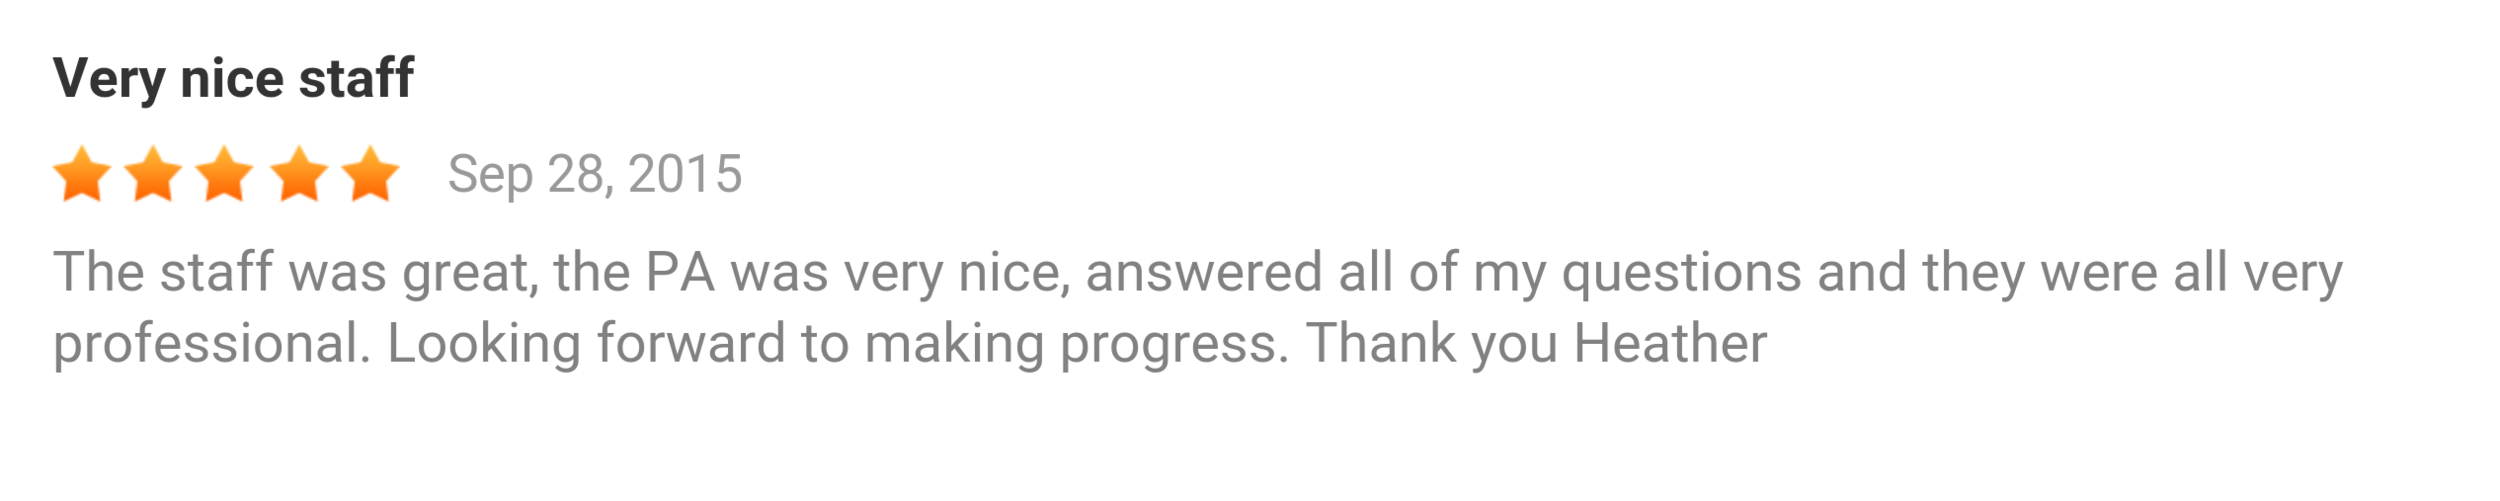 Review Nice Staff 9-28.png